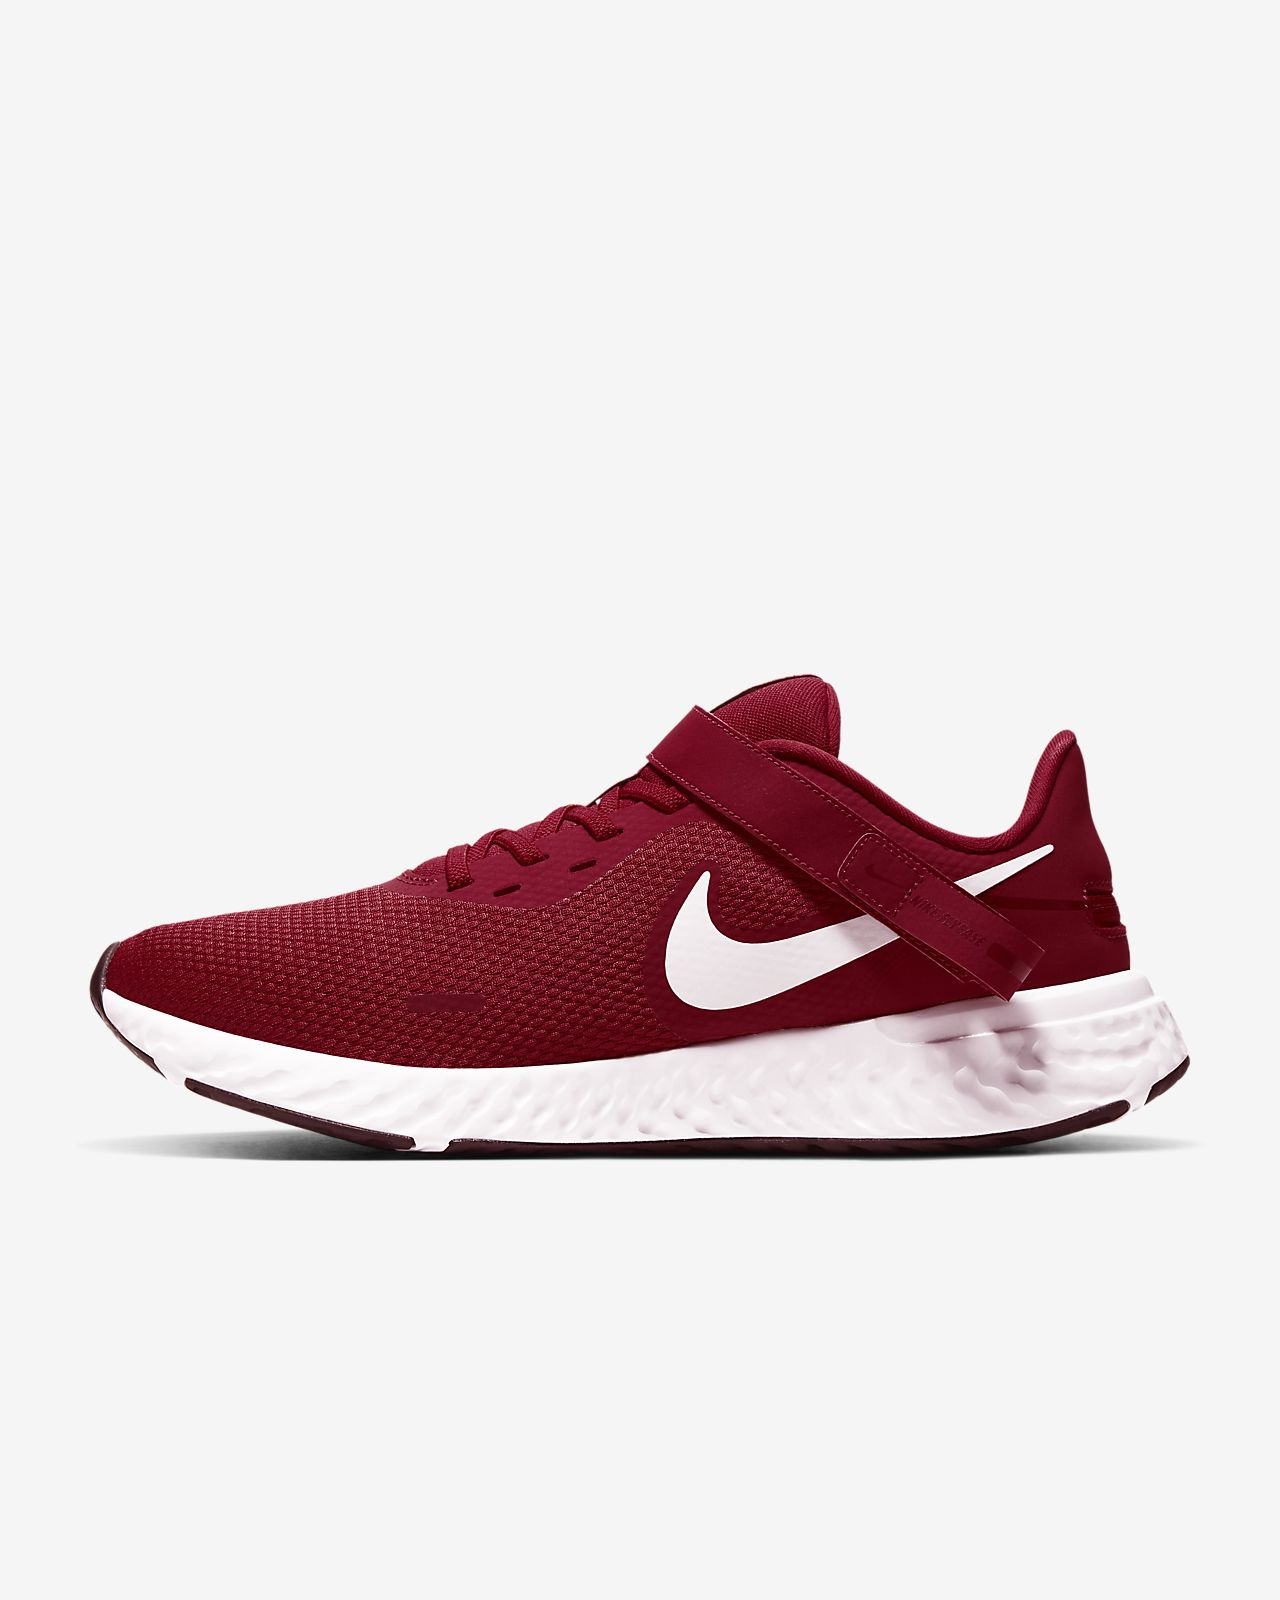 Chaussure de running Nike Revolution 5 FlyEase pour Homme